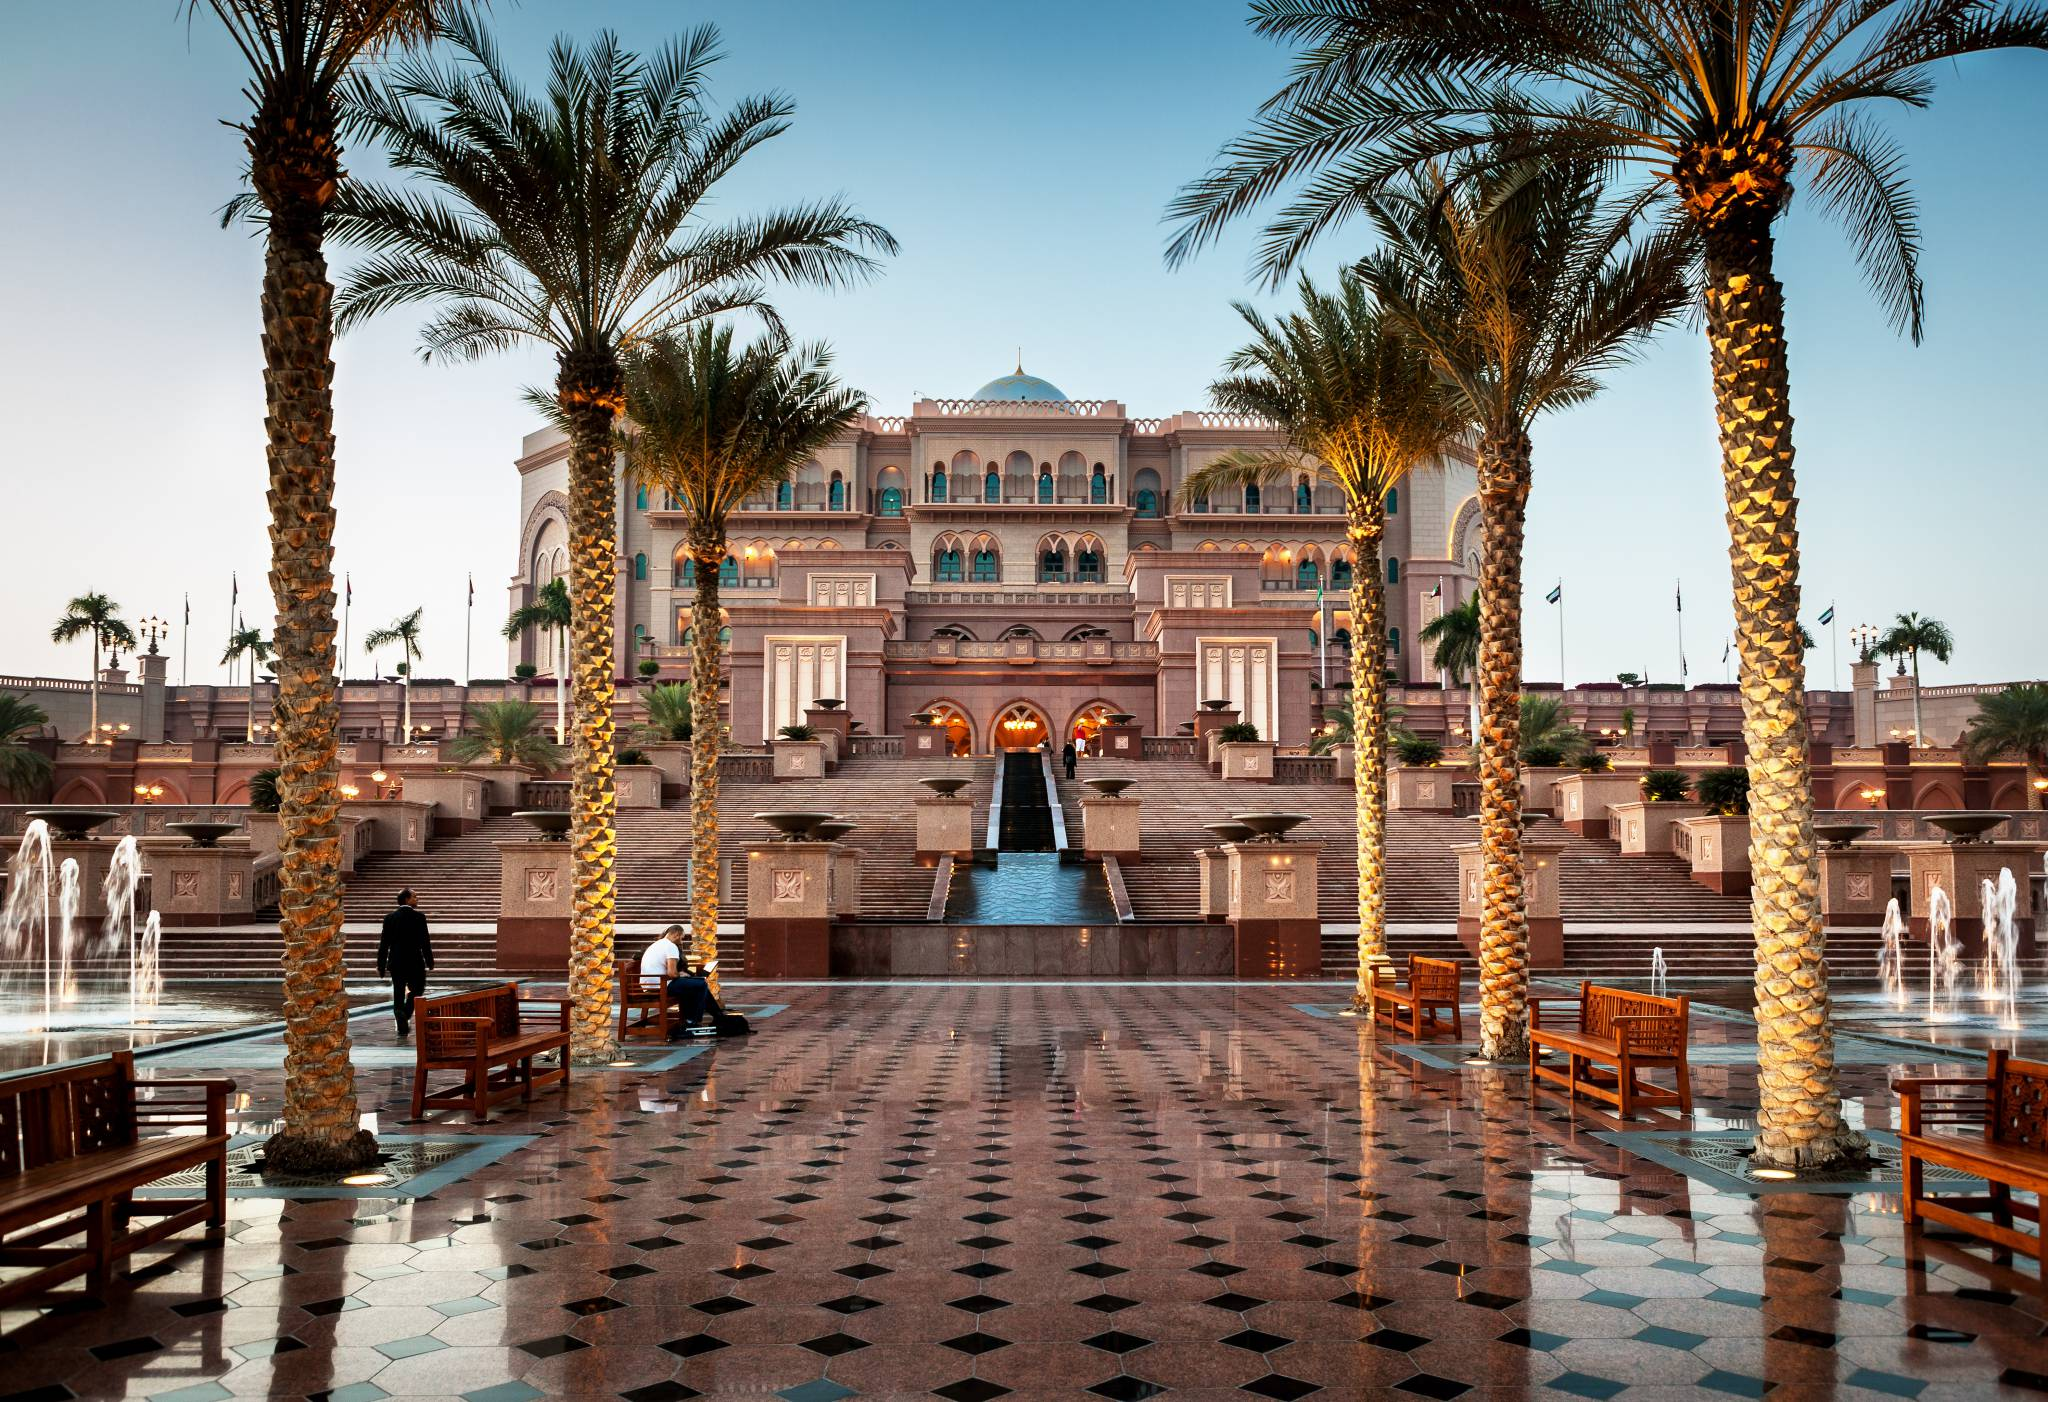 Travel to Abu Dhabi with eTips Travel Guide